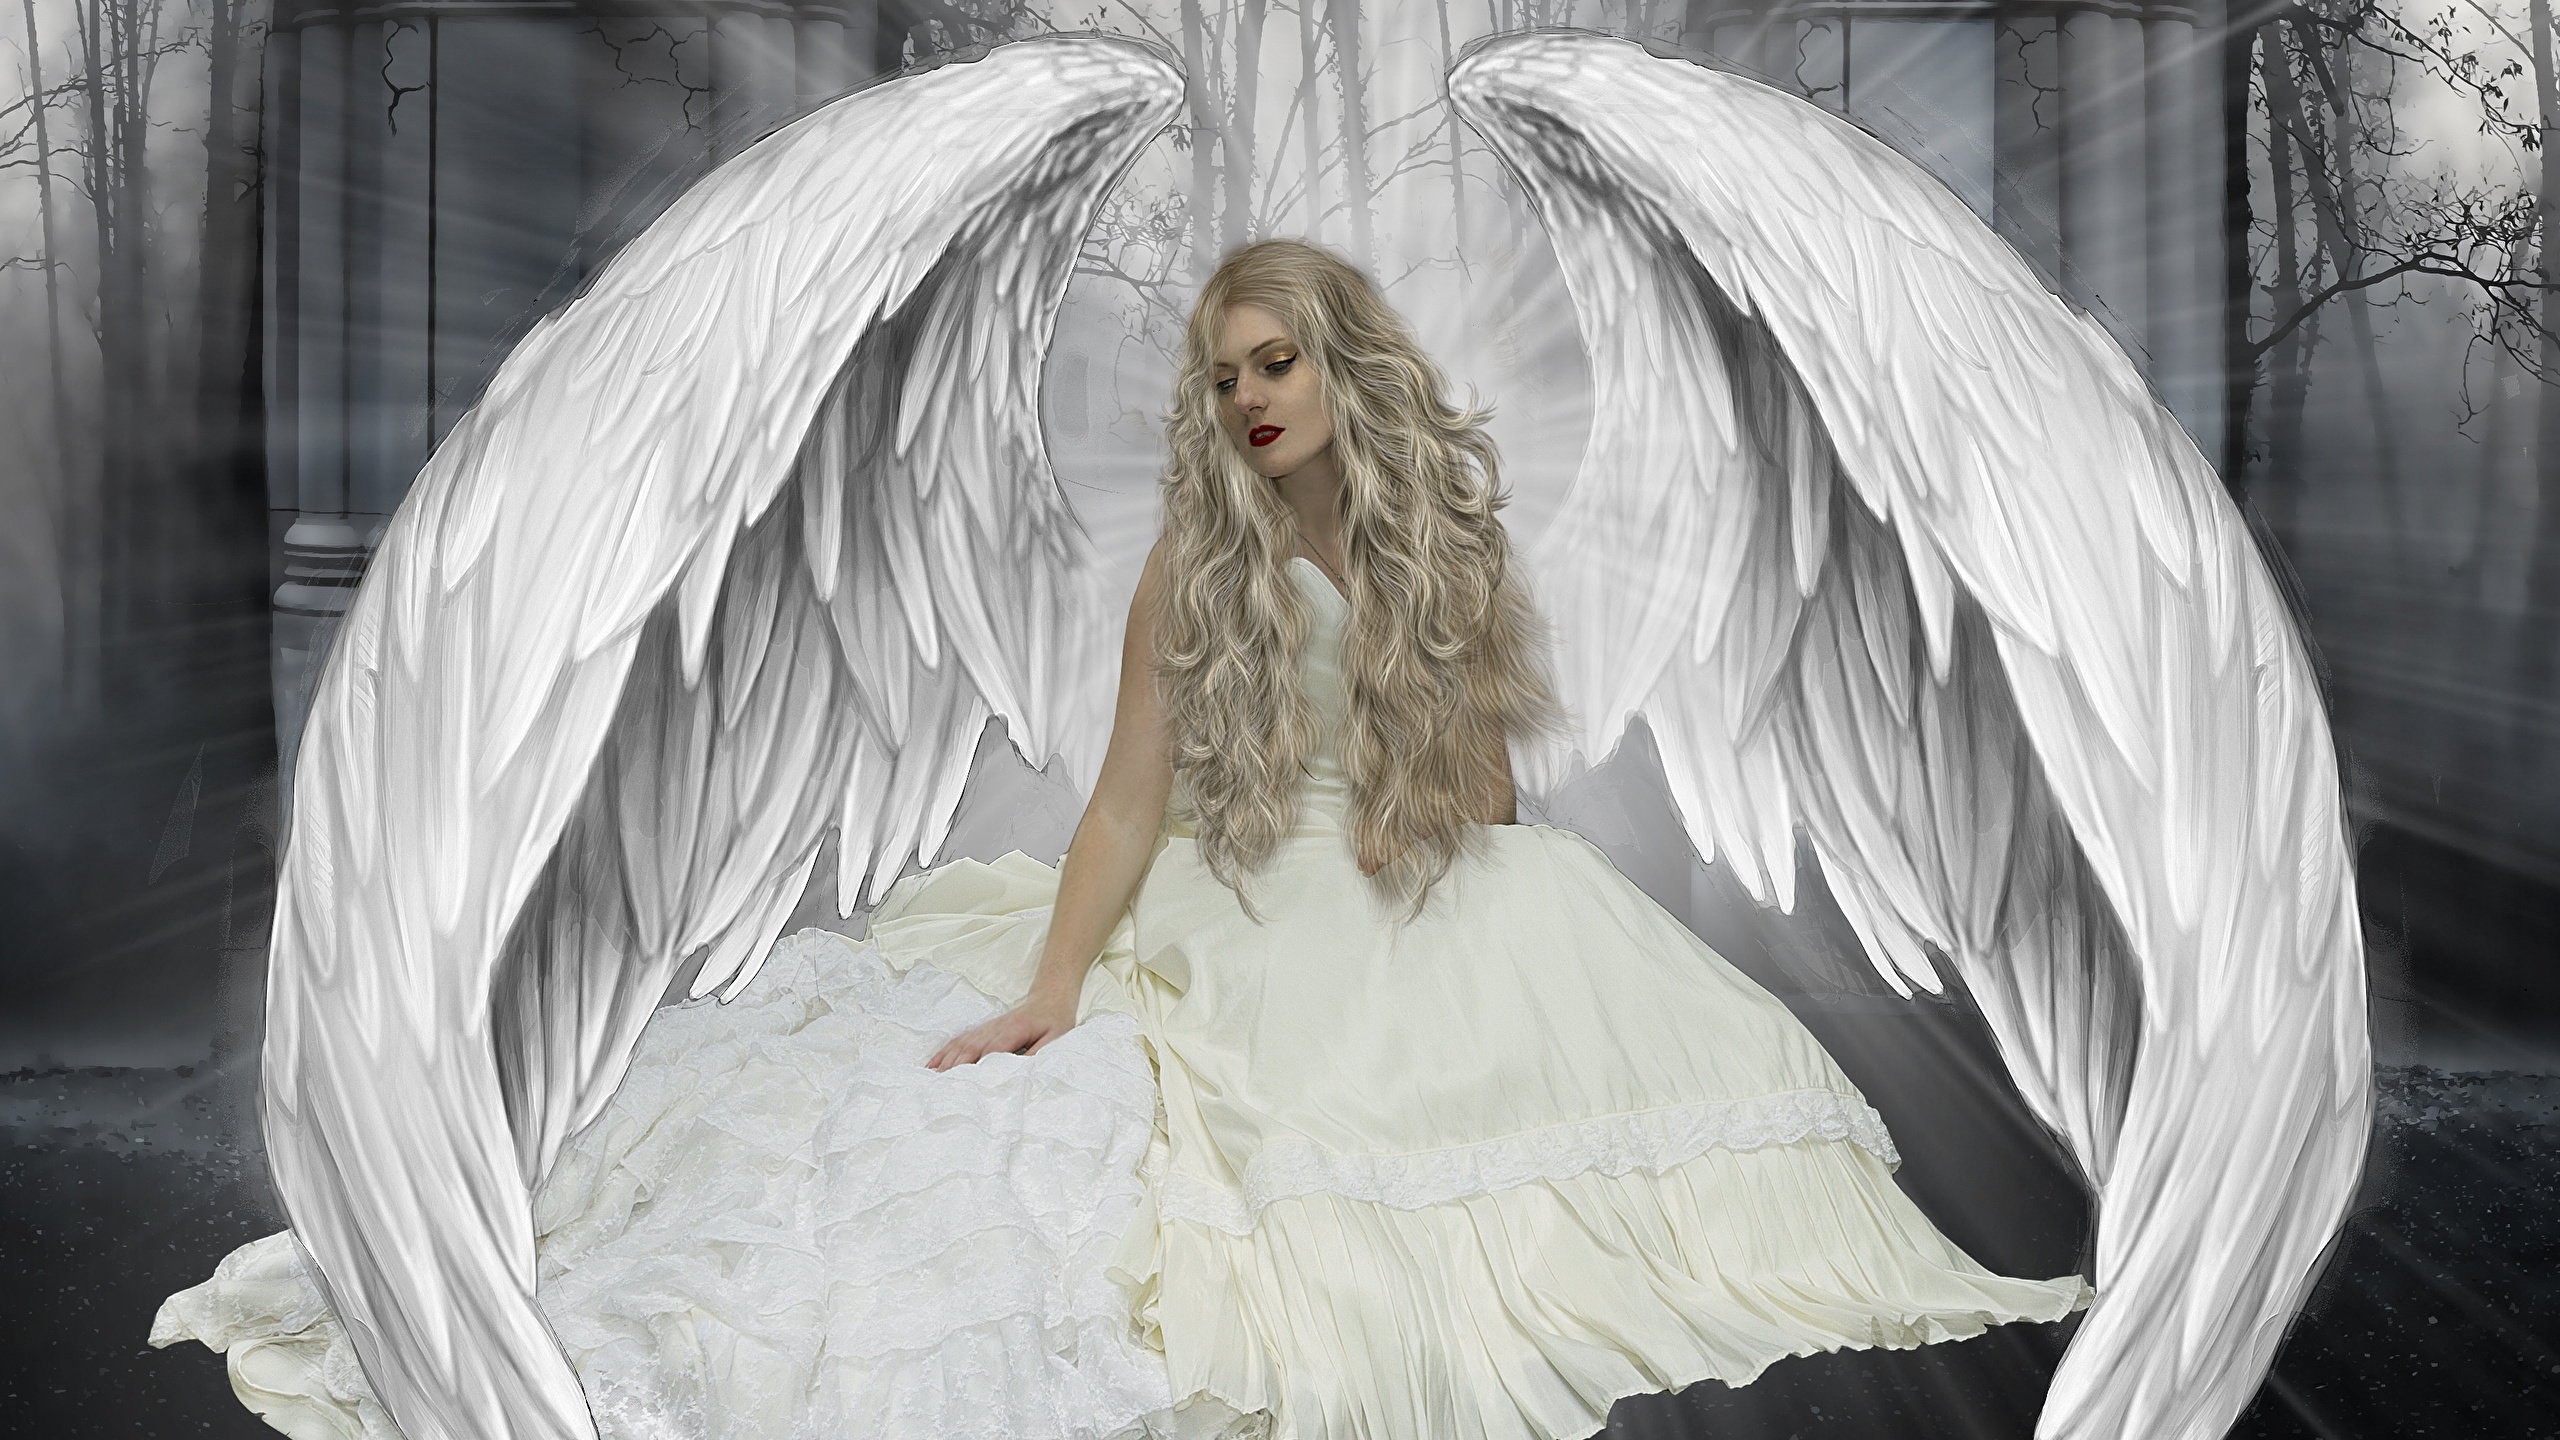 Pictures Blonde Girl Wings Fantasy Young Woman Angel 2560x1440